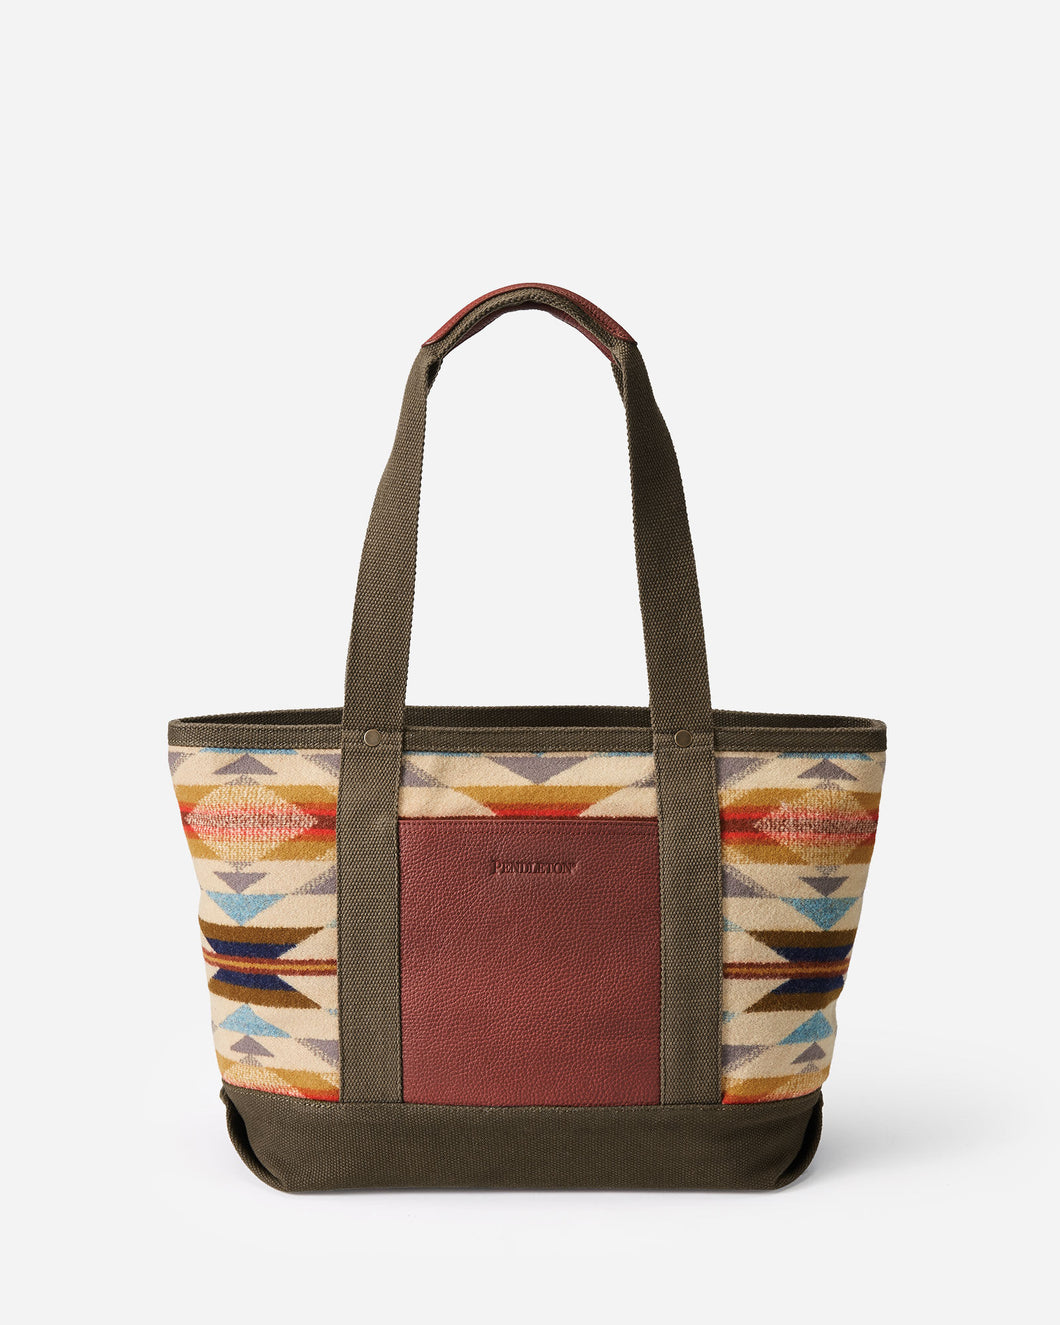 Pendleton woolen mills wyeth trail zip tote pattern wool purse handbag tribal pattern